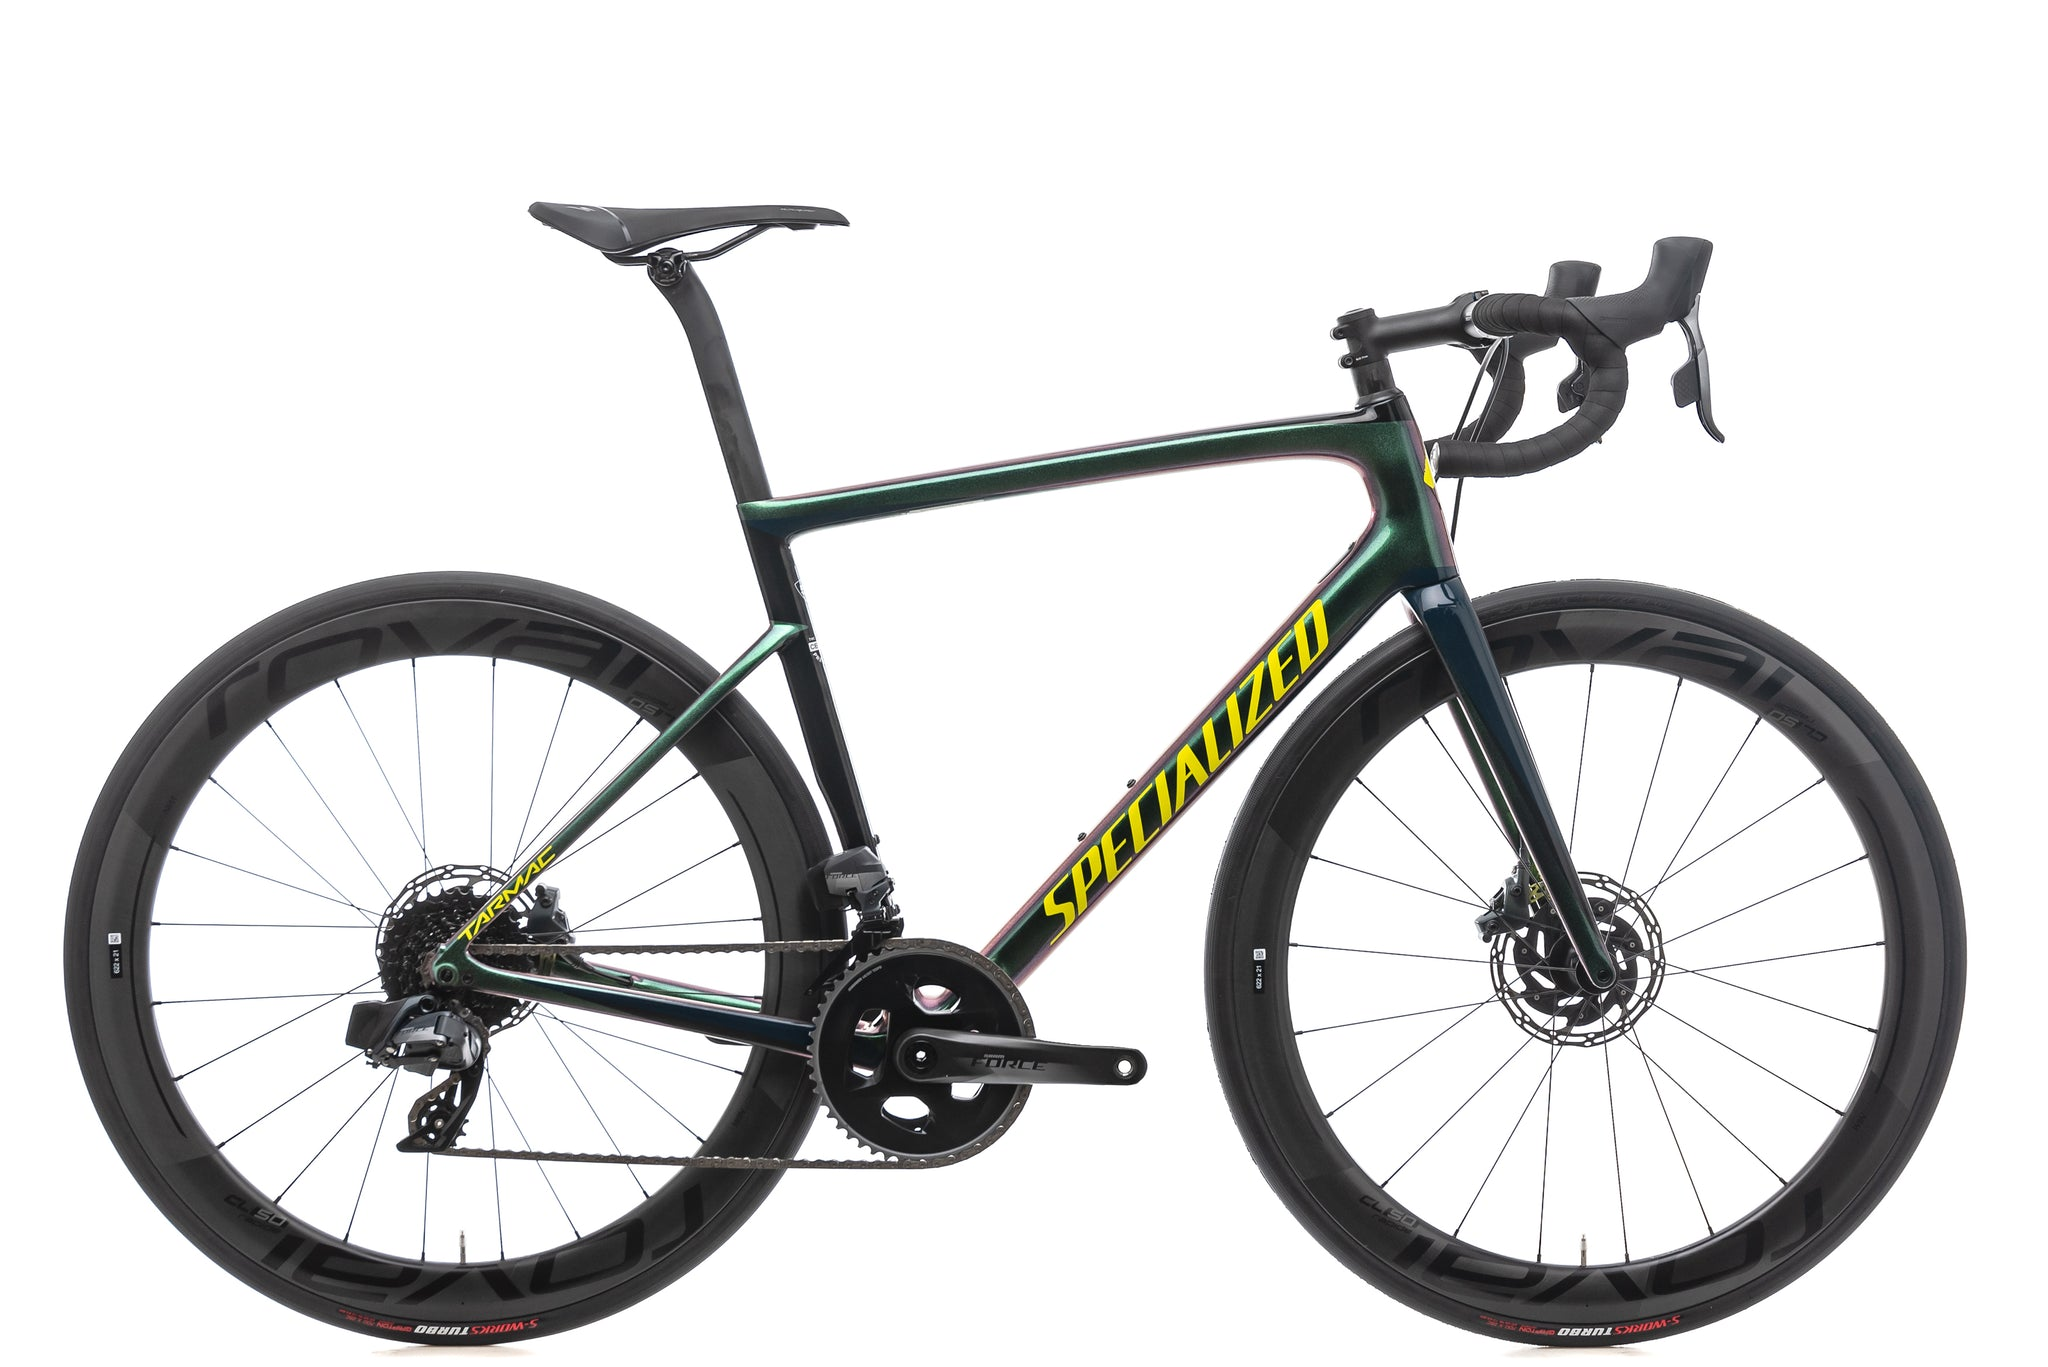 2020 Specialized Tarmac SL6 SRAM Force AXS Road Bike